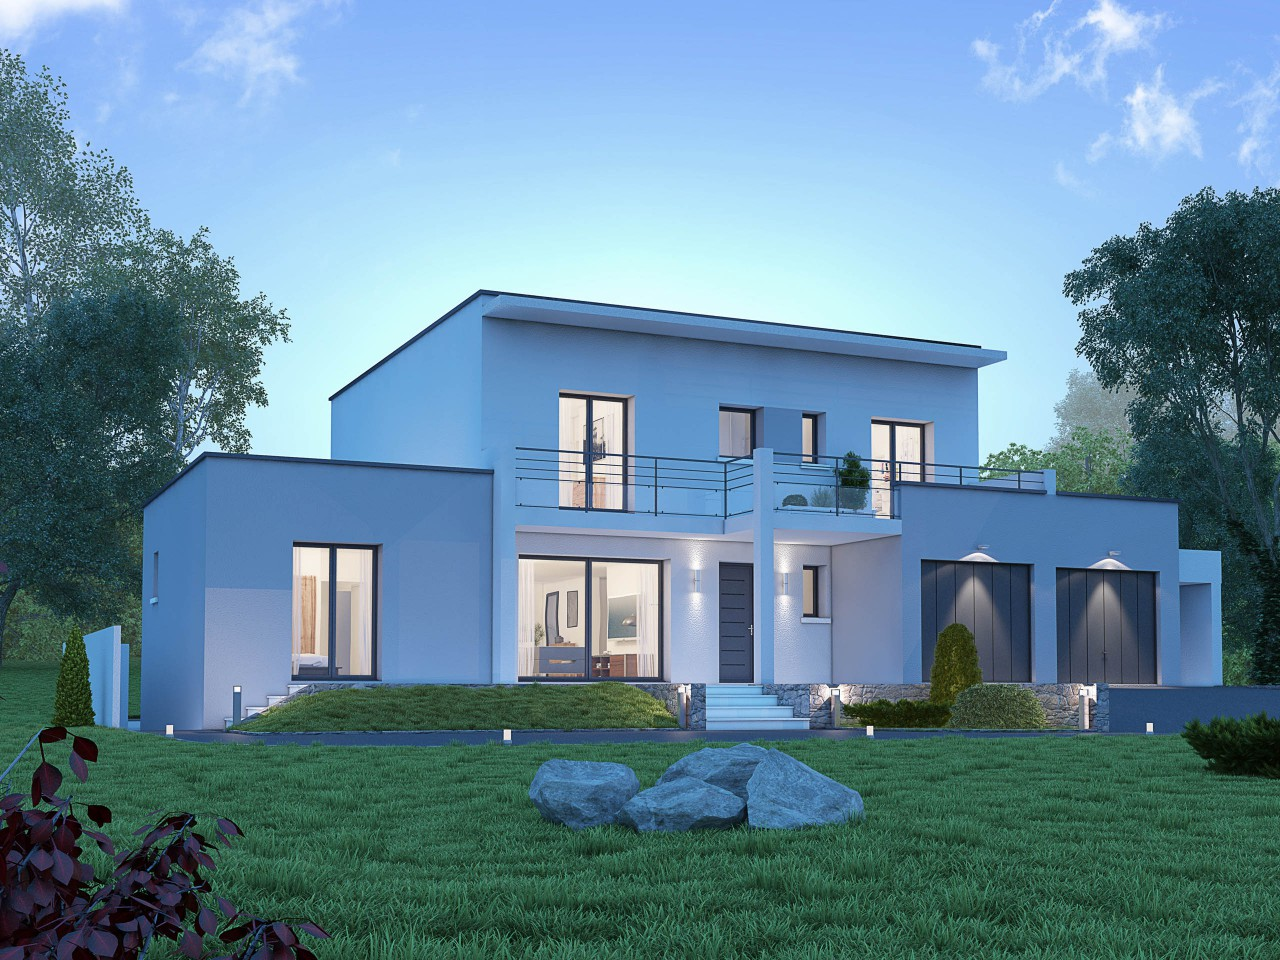 Construction maison neuve ile de france avie home for Constructeur maison neuve ile de france